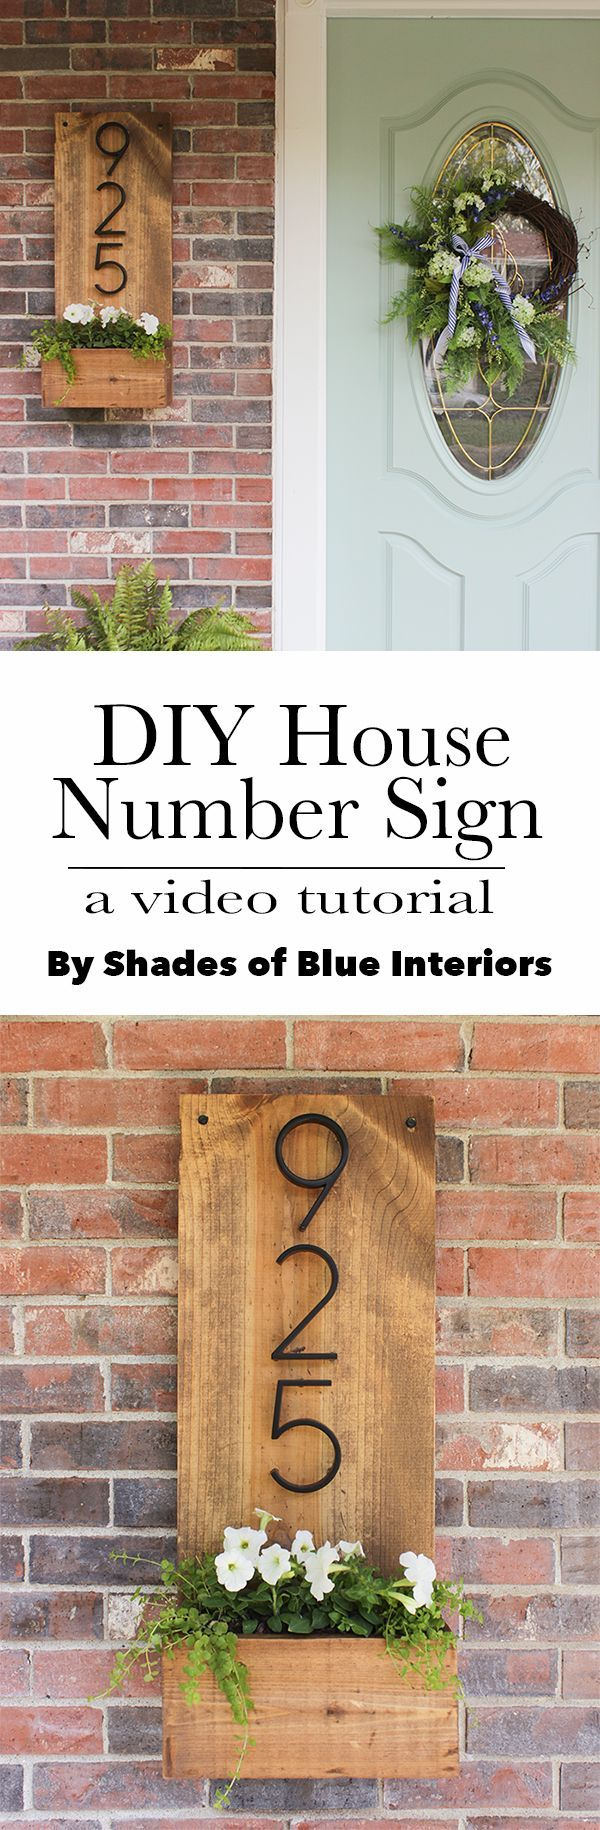 DIY House Number Sign- how to make one from 2 boards and give a weatherproof, natural topcoat.